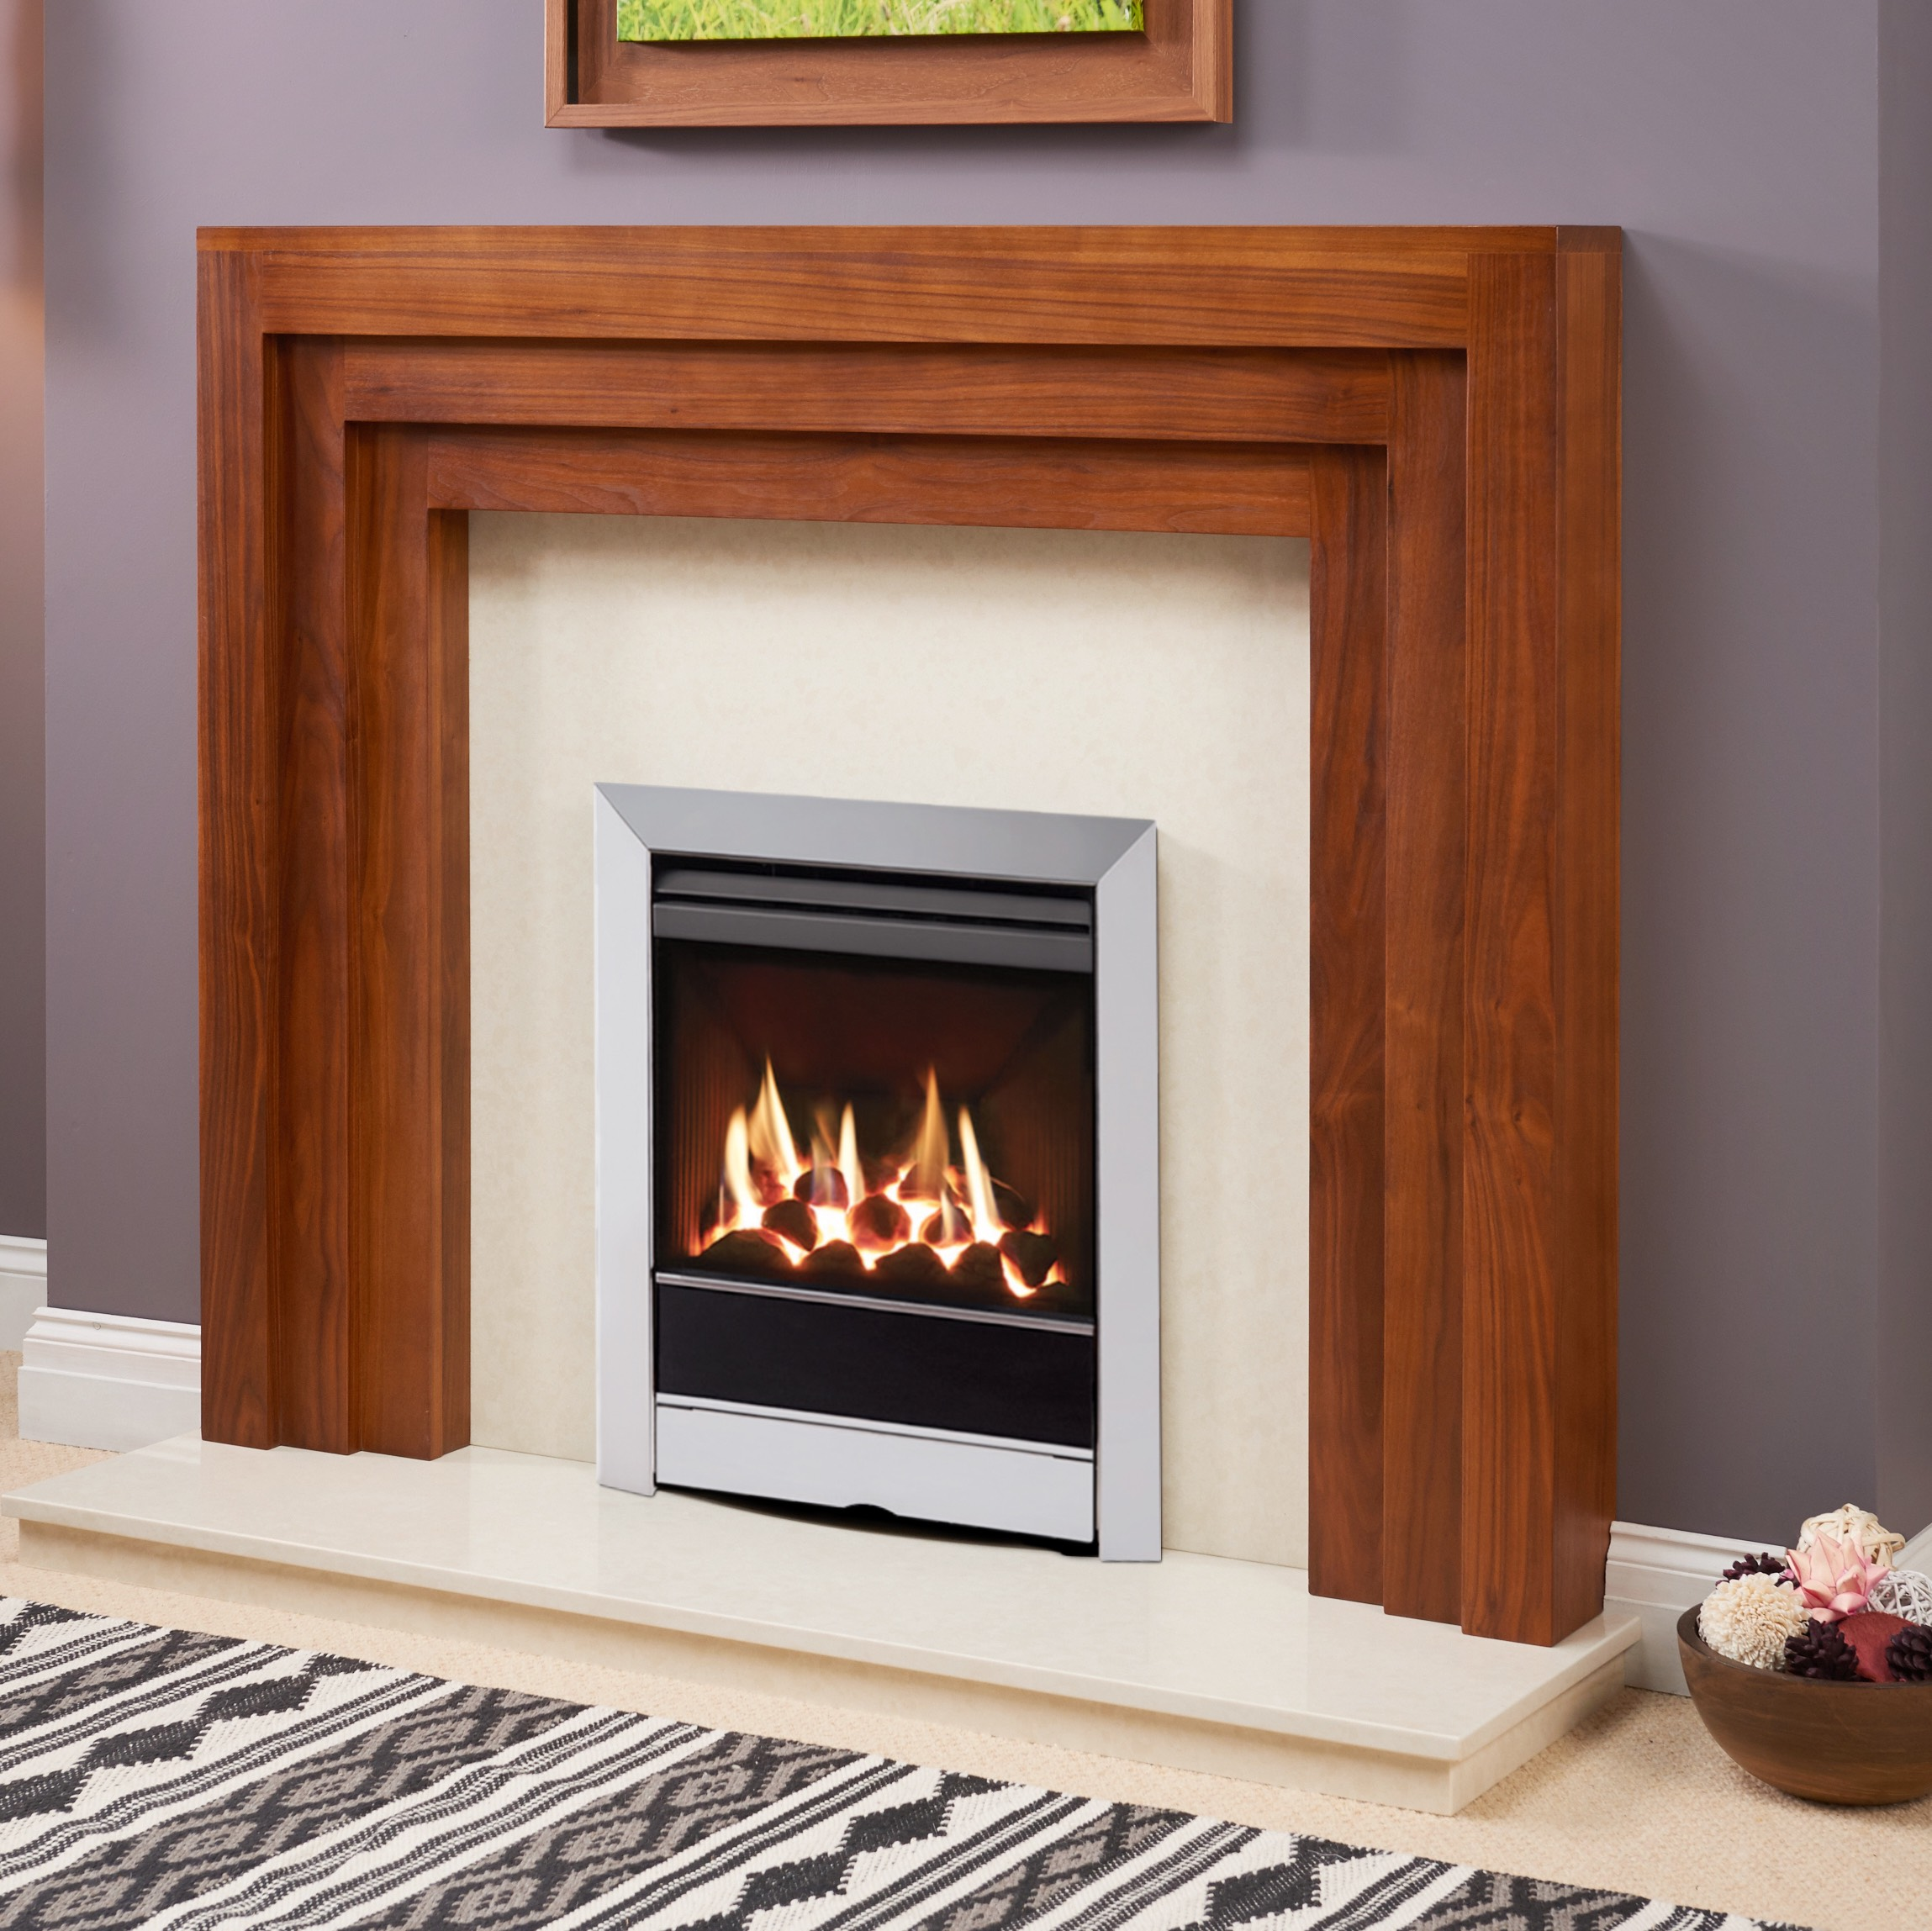 Fairways Elland Solid Oak Fire Surround